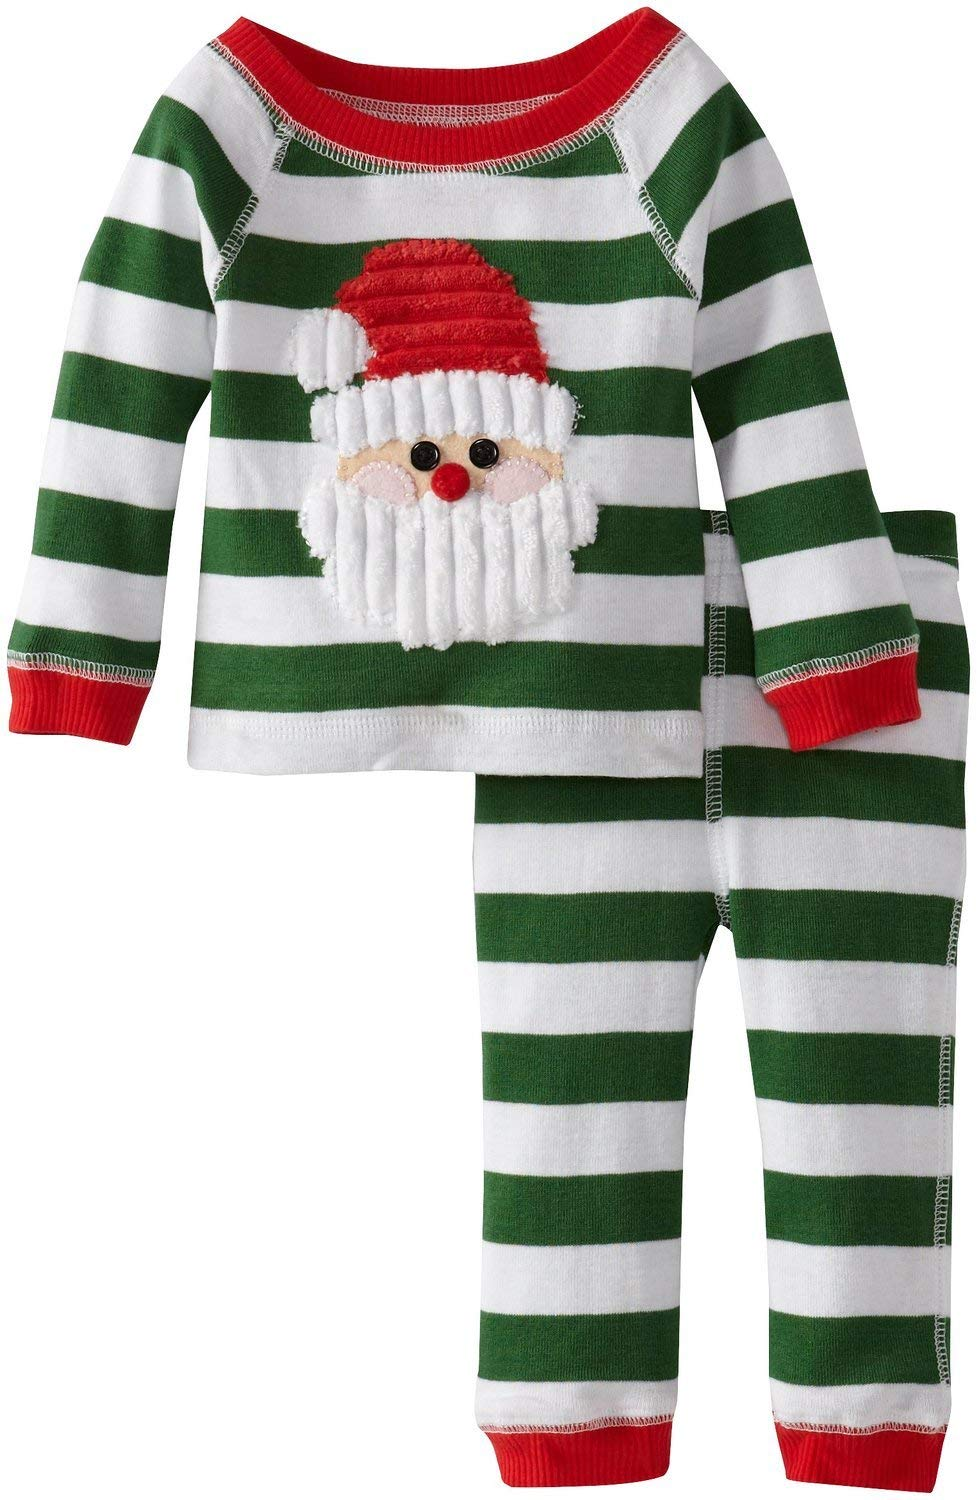 52d3f13ab2 Get Quotations · Green Stripes Santa Lounge Set Mud Pie Infant or Toddler Christmas  Pajamas 2T